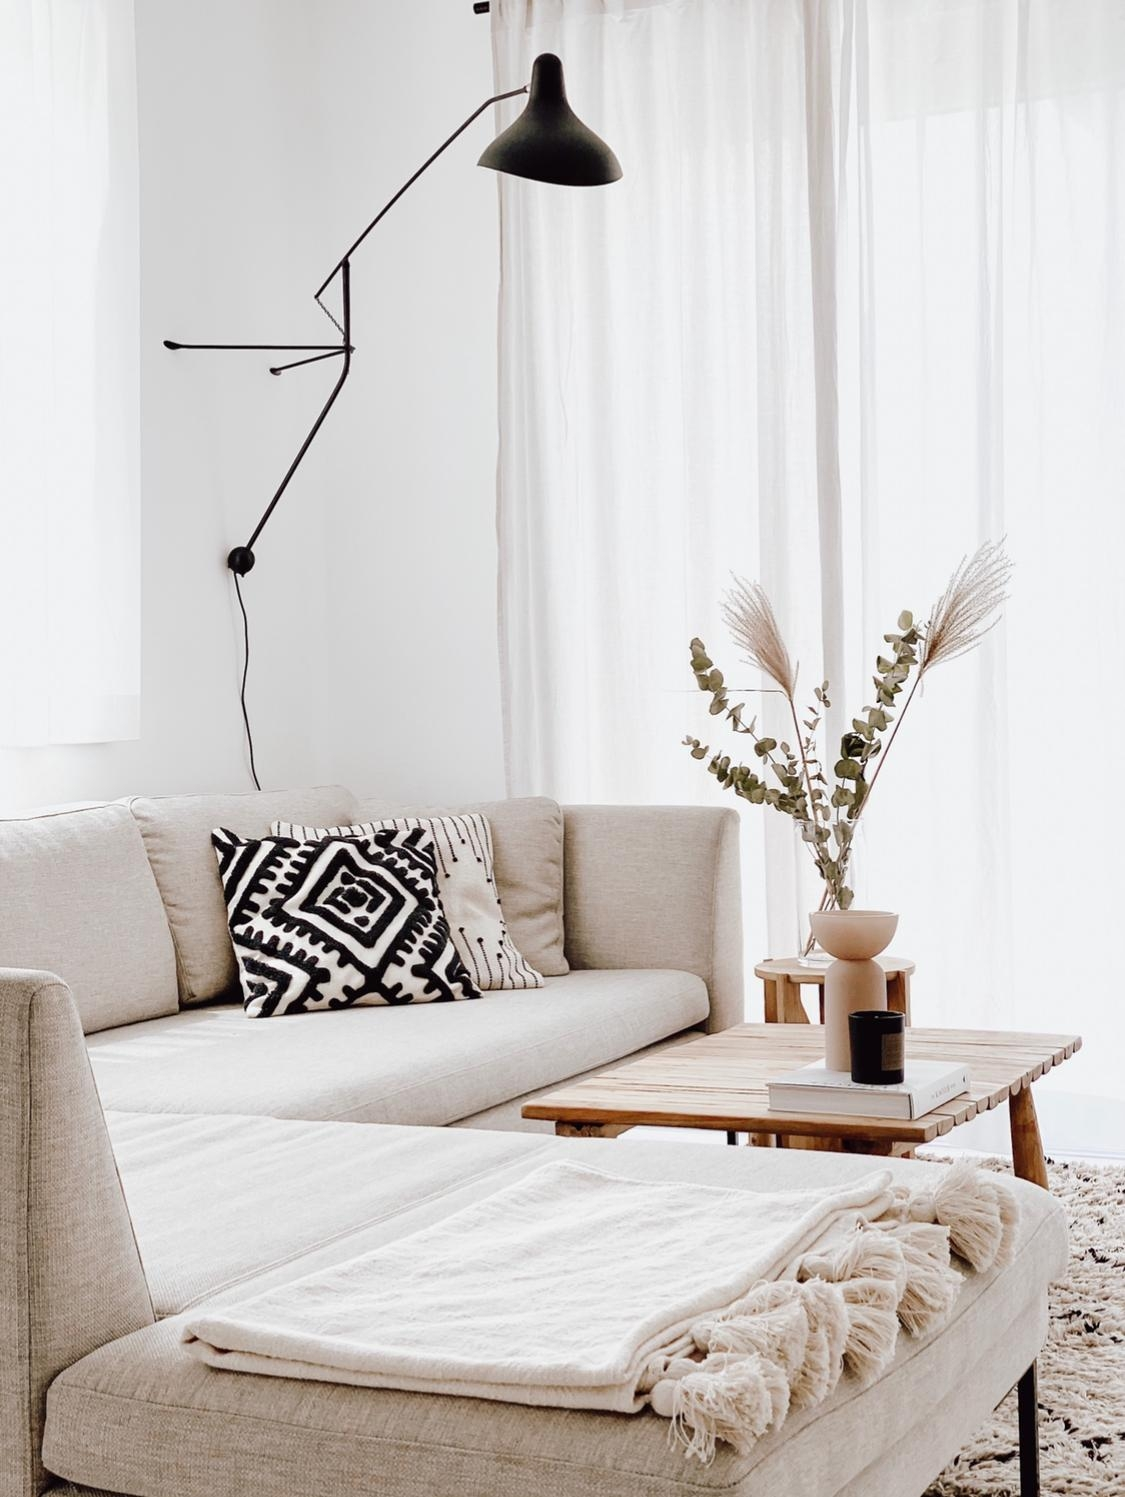 #wohnzimmer #livingroom #homedecor #homedecoration #casa #bohoscandi #interior_and_living #hygge #interiorinspo